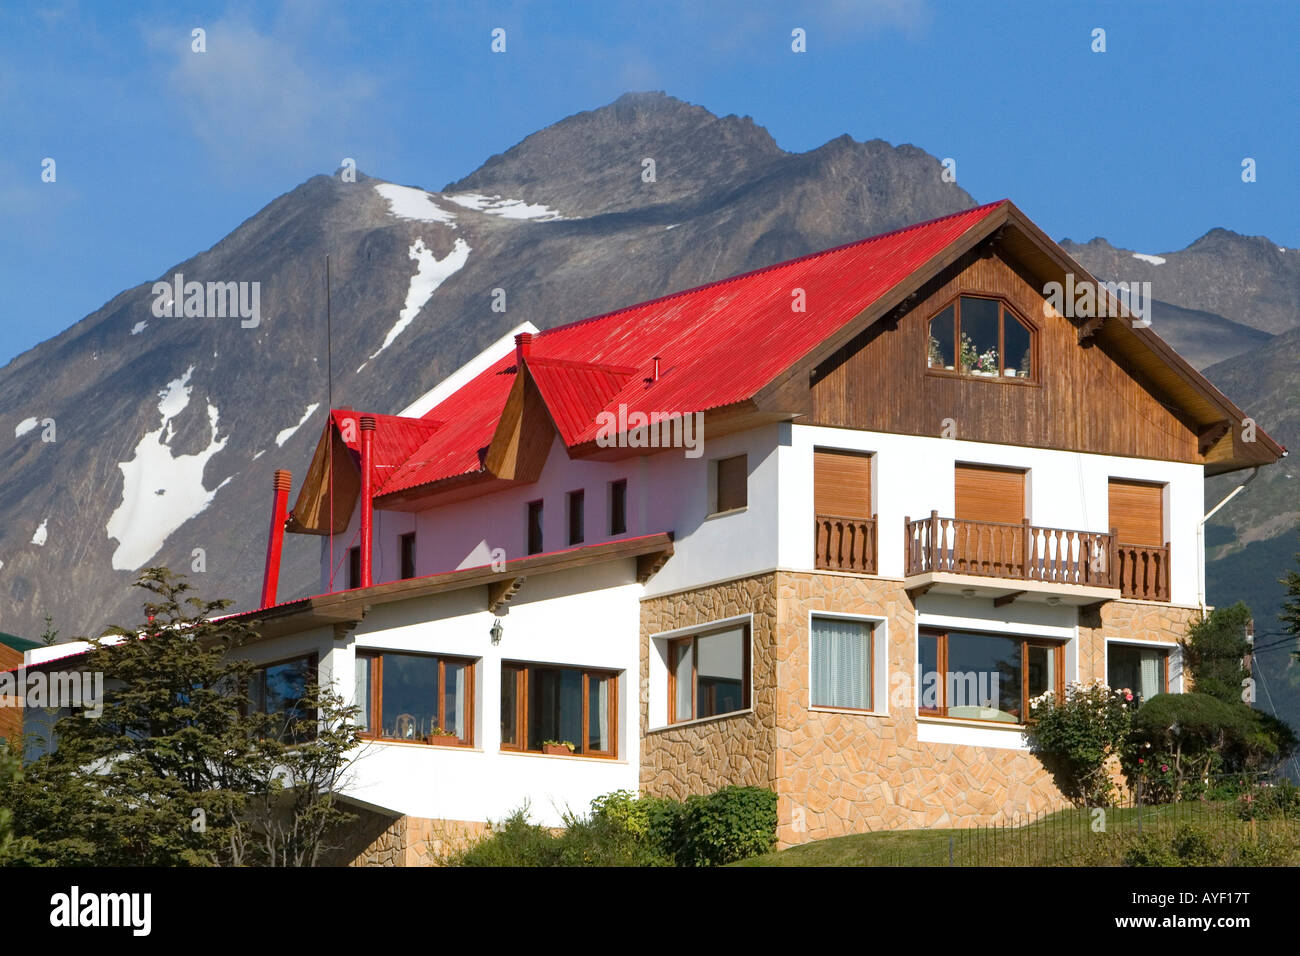 Chalet style house below the Martial mountain range at Ushuaia Tierra del Fuego Argentina - Stock Image